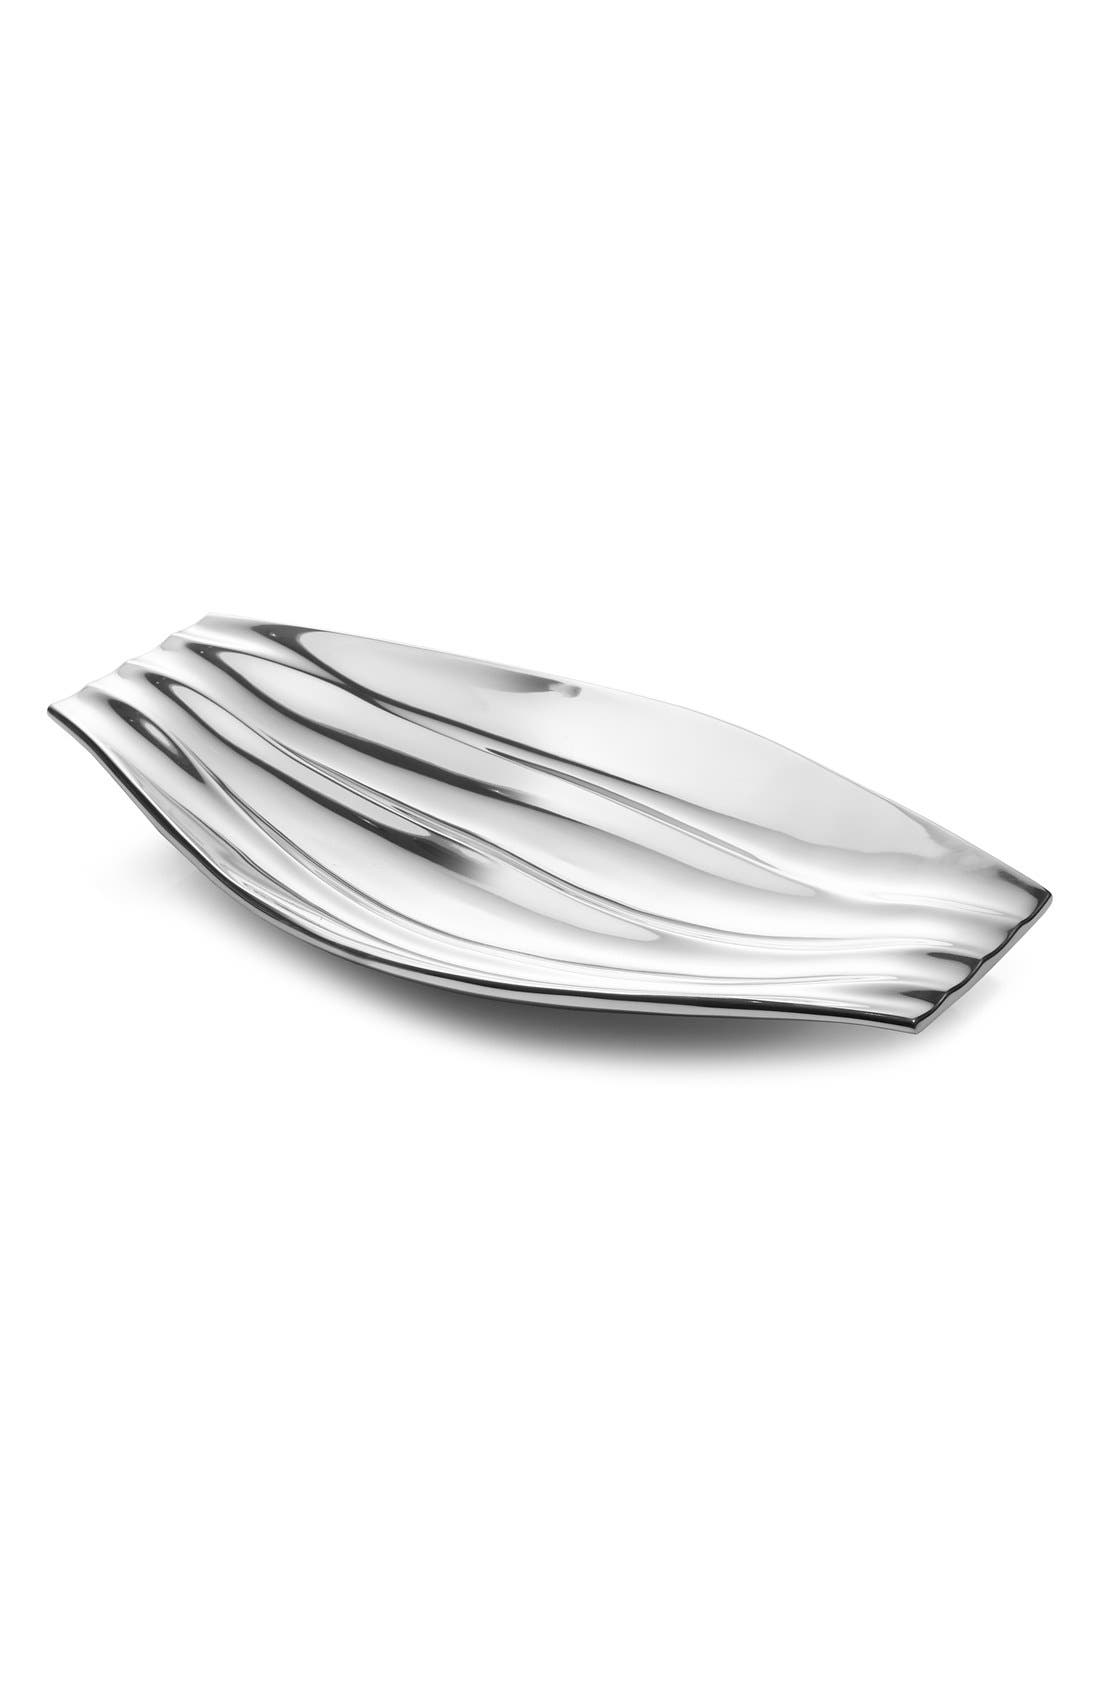 Alternate Image 1 Selected - Nambé 'Drift' Serving Platter